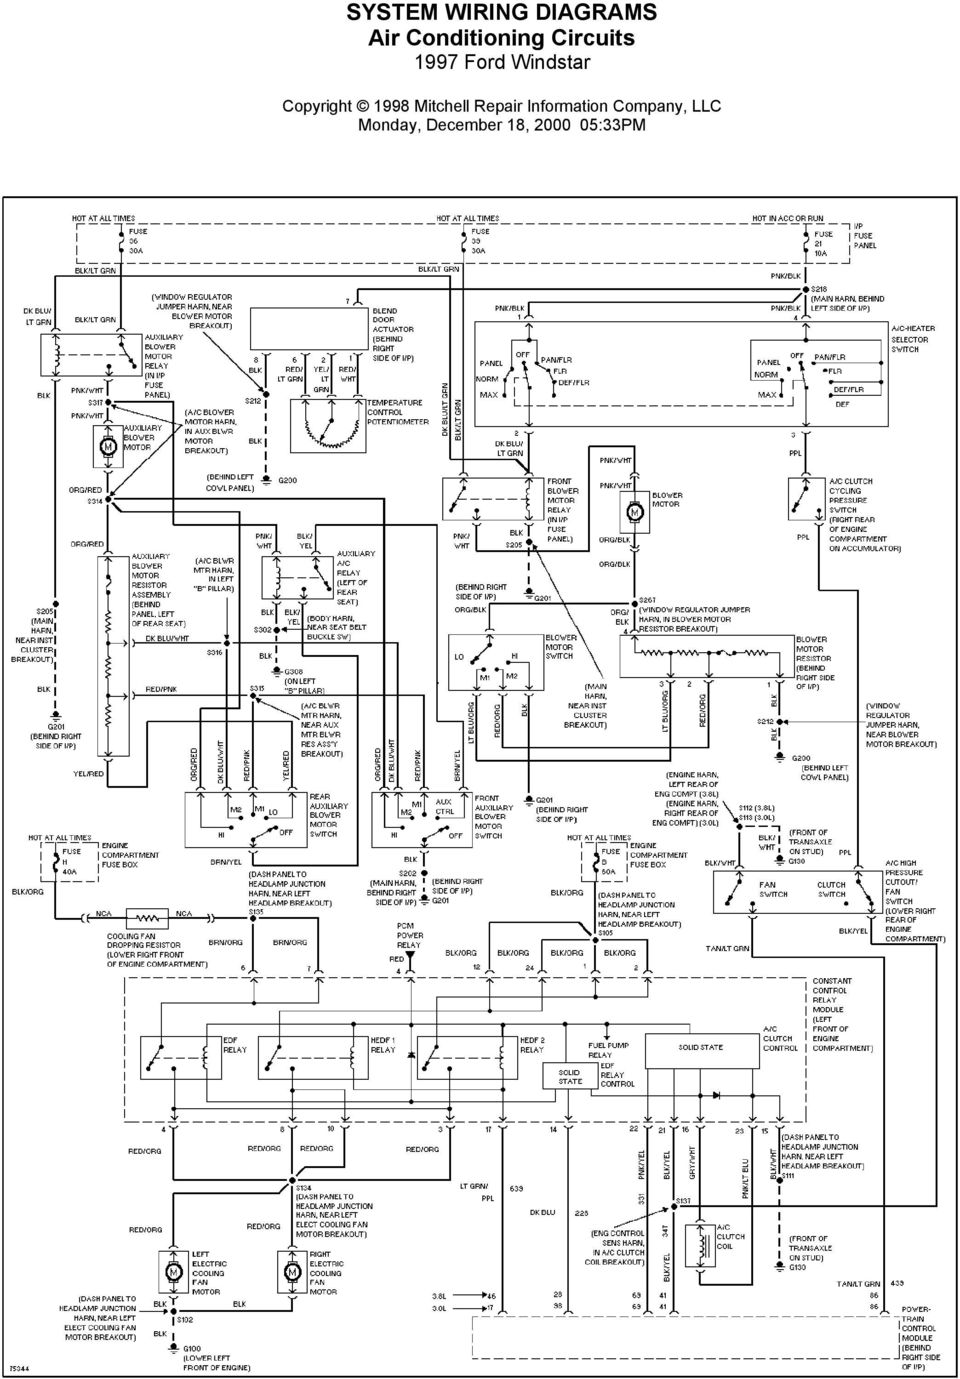 System Wiring Diagrams Air Conditioning Circuits 1997 Ford Windstar 1990 Mustang Diagram Chart